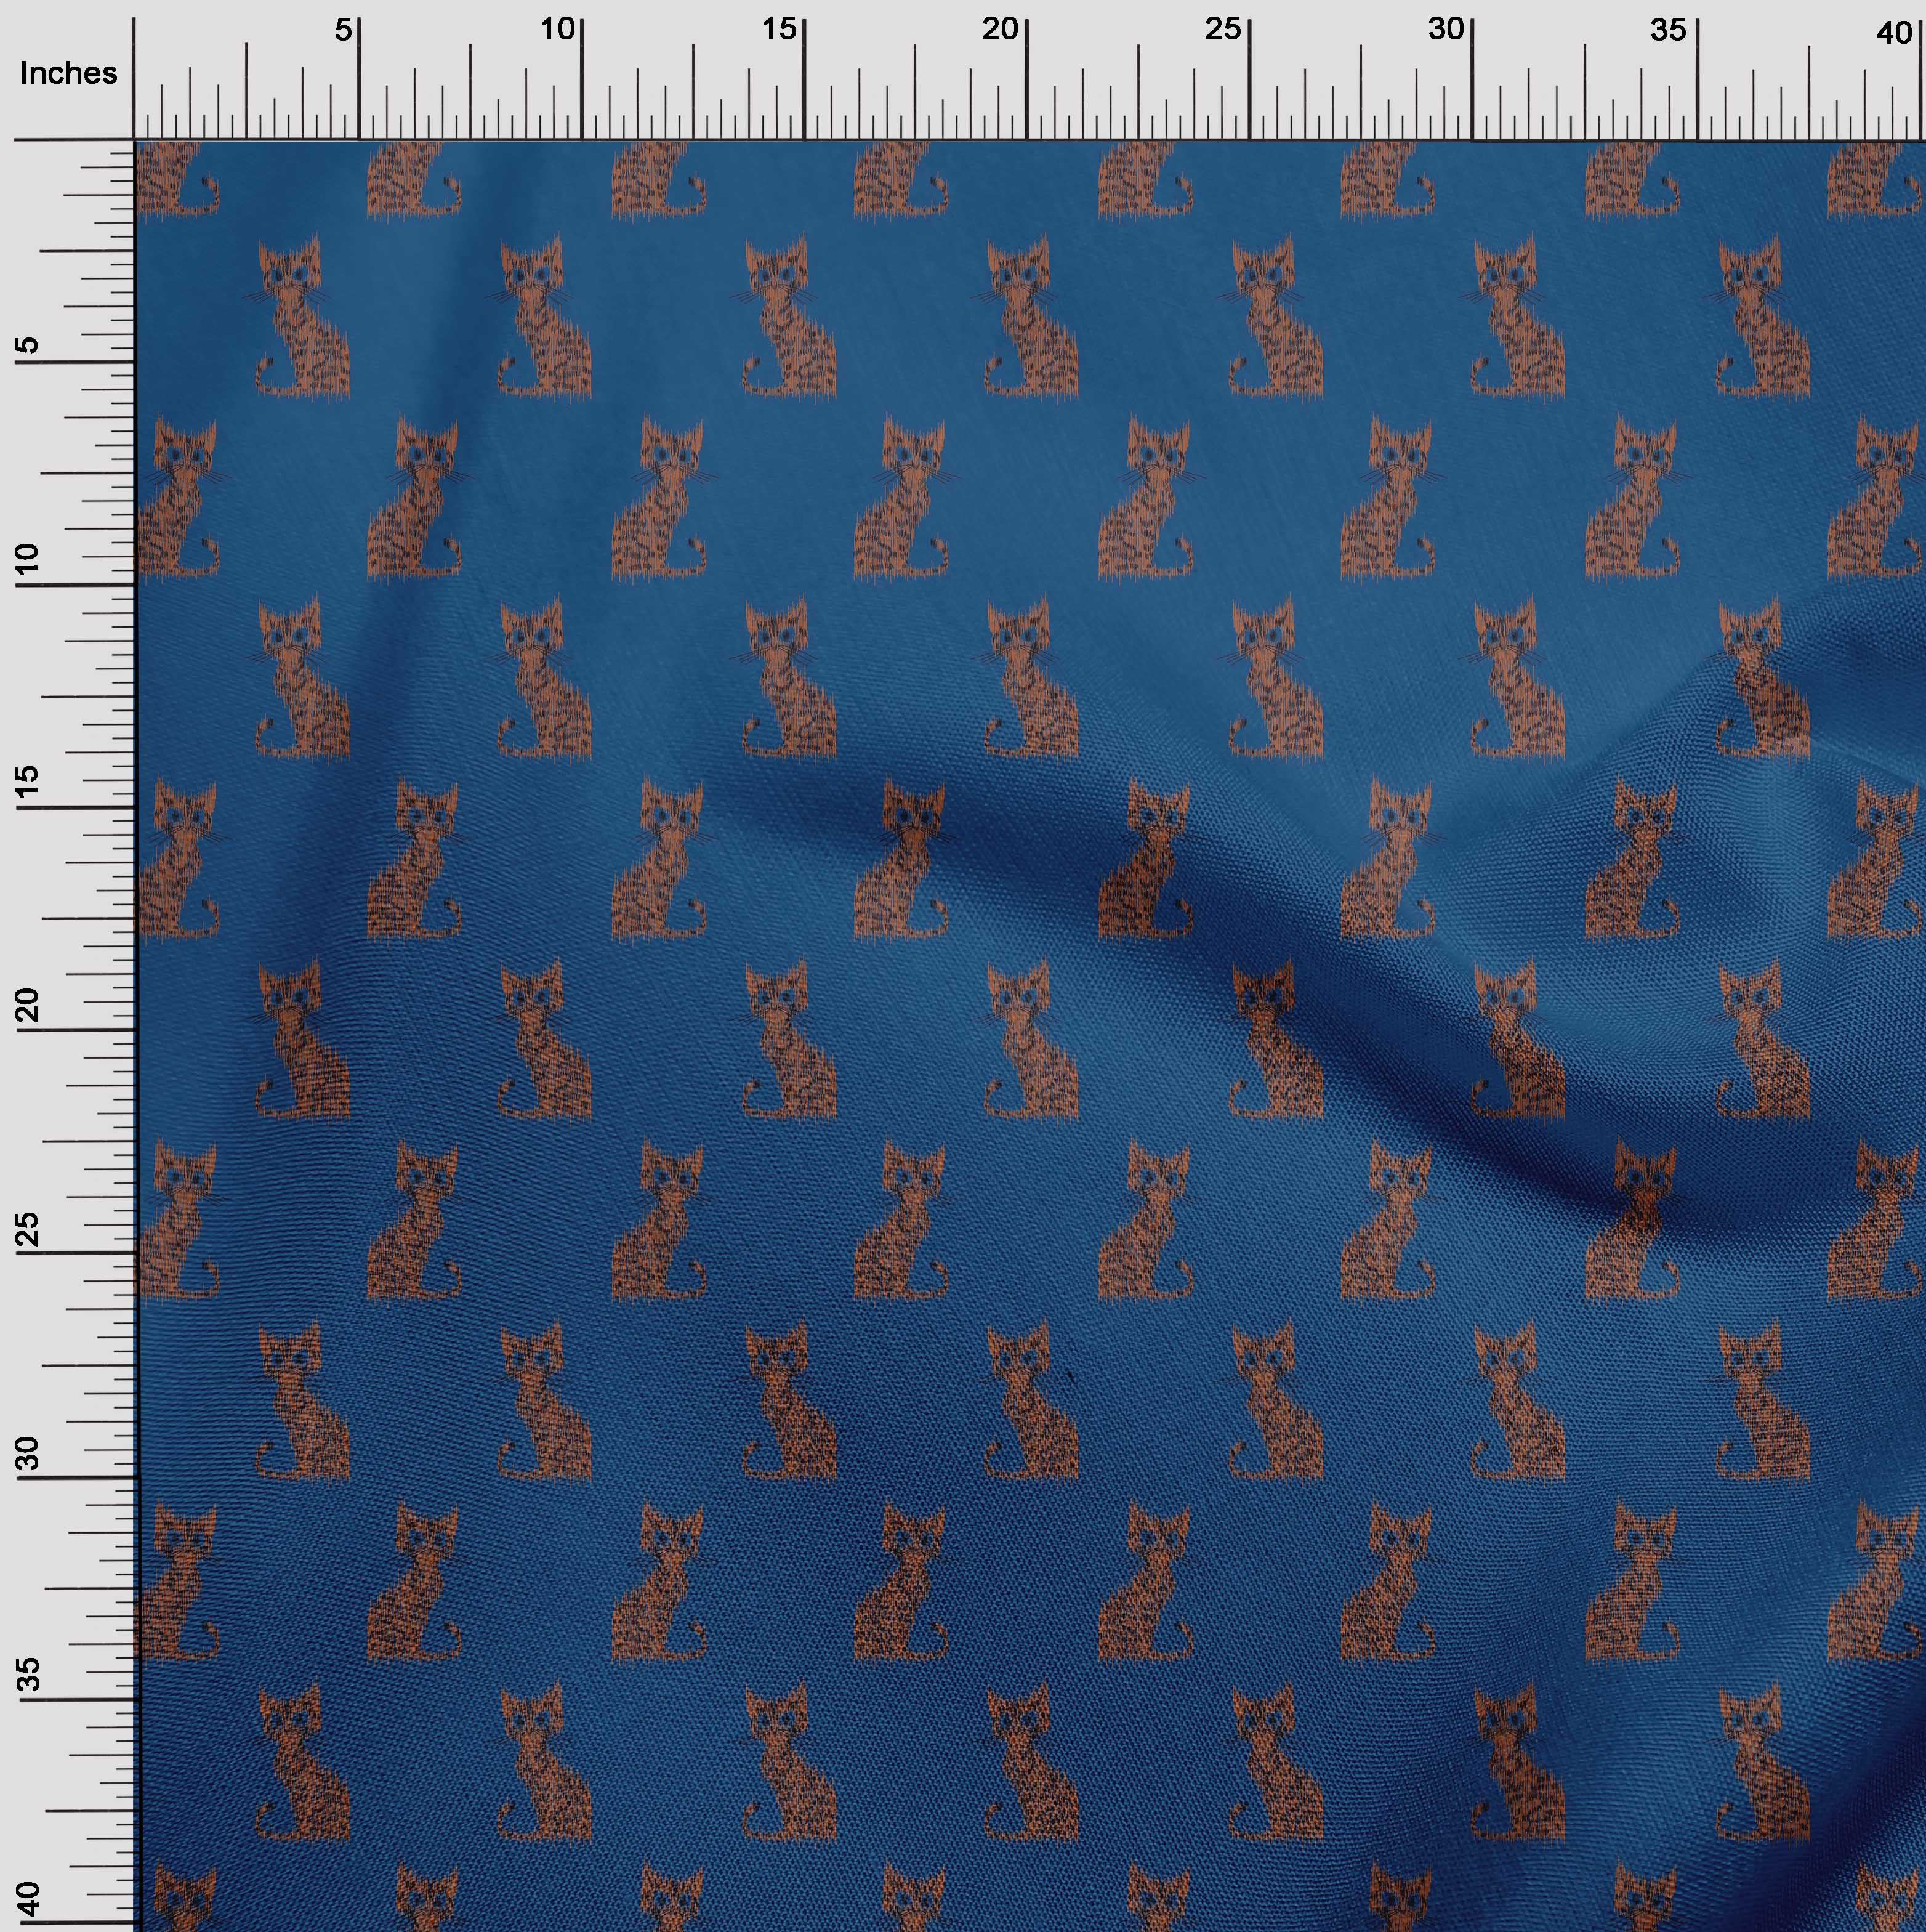 oneOone-Katze-Ikat-Printed-Craft-Fabric-By-The-Meter-IK-1203A-1 Indexbild 4